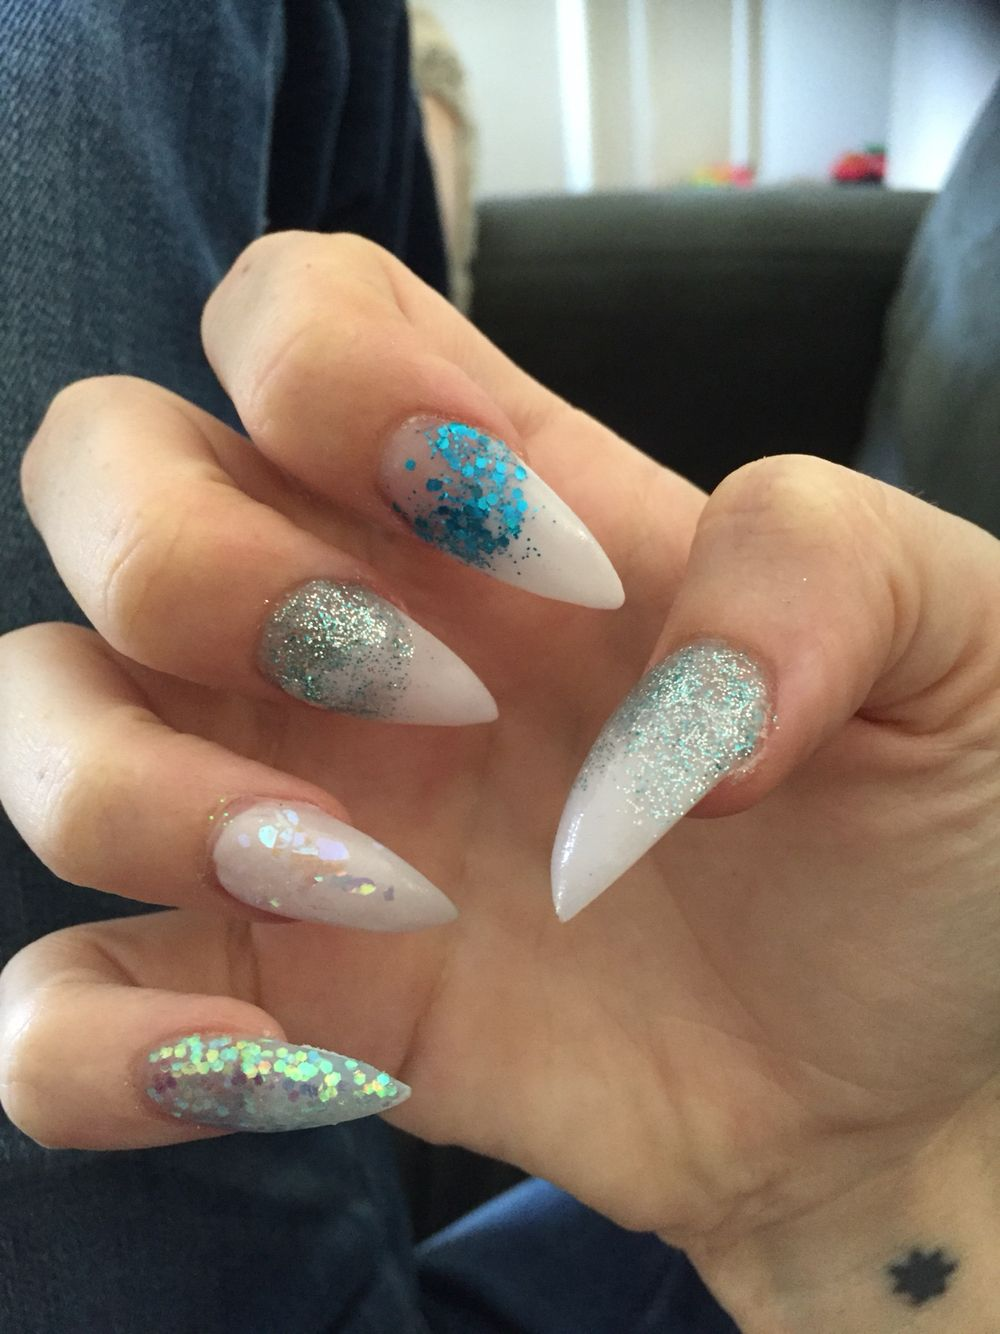 https://www.facebook.com/Glitter-Minx-Nails-225276647856191/